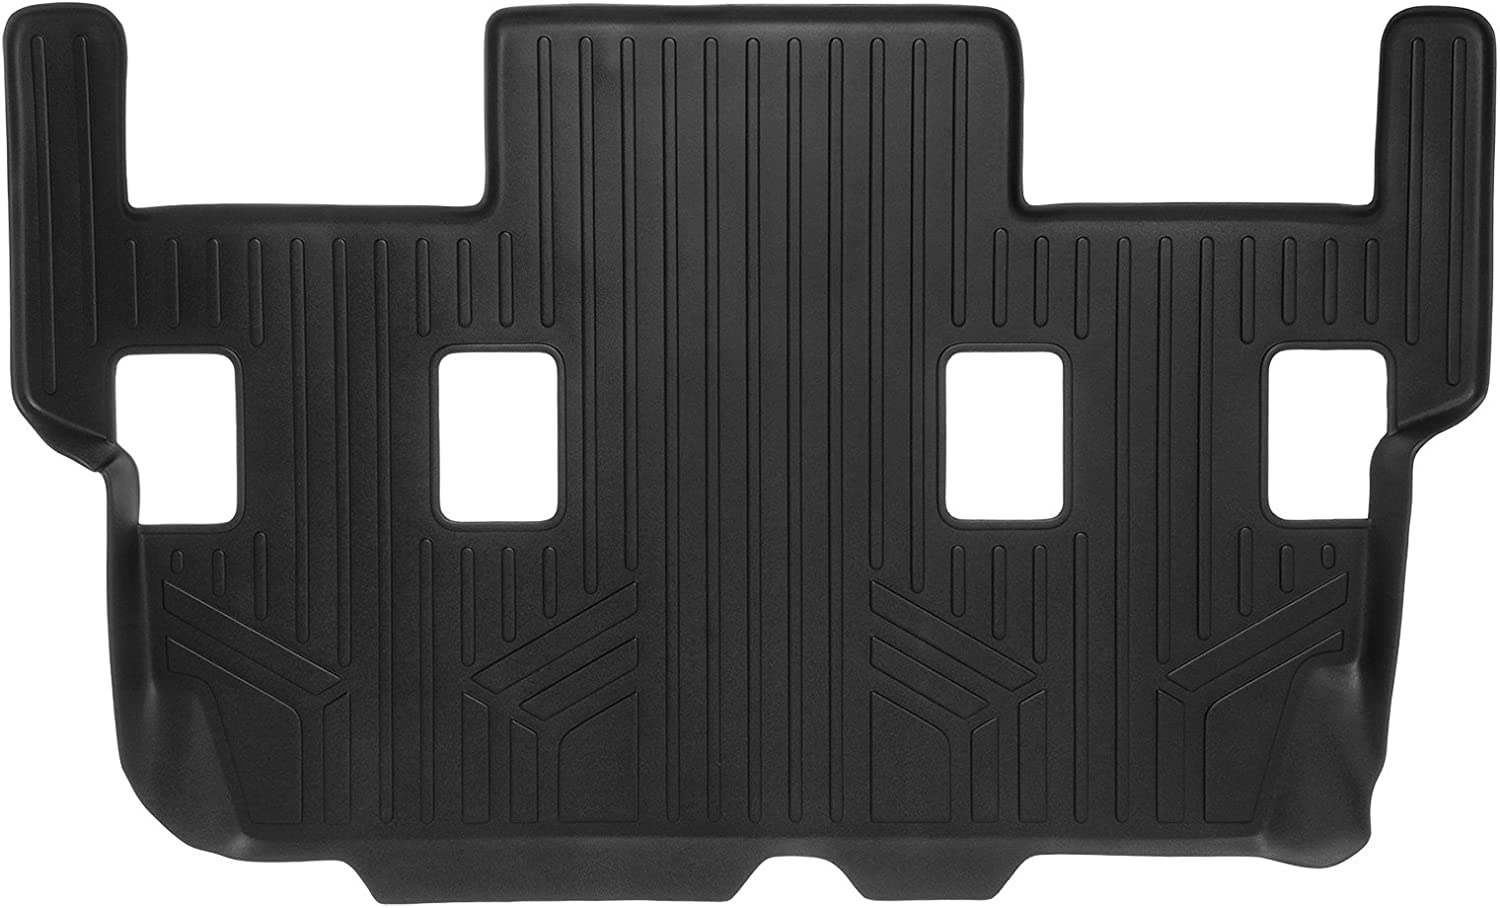 SMARTLINER Floor Mats Cargo Liner Behind 3rd Row Set Black 2011-2017 Expedition EL//Navigator L 2nd Row Bucket Seats Without Console